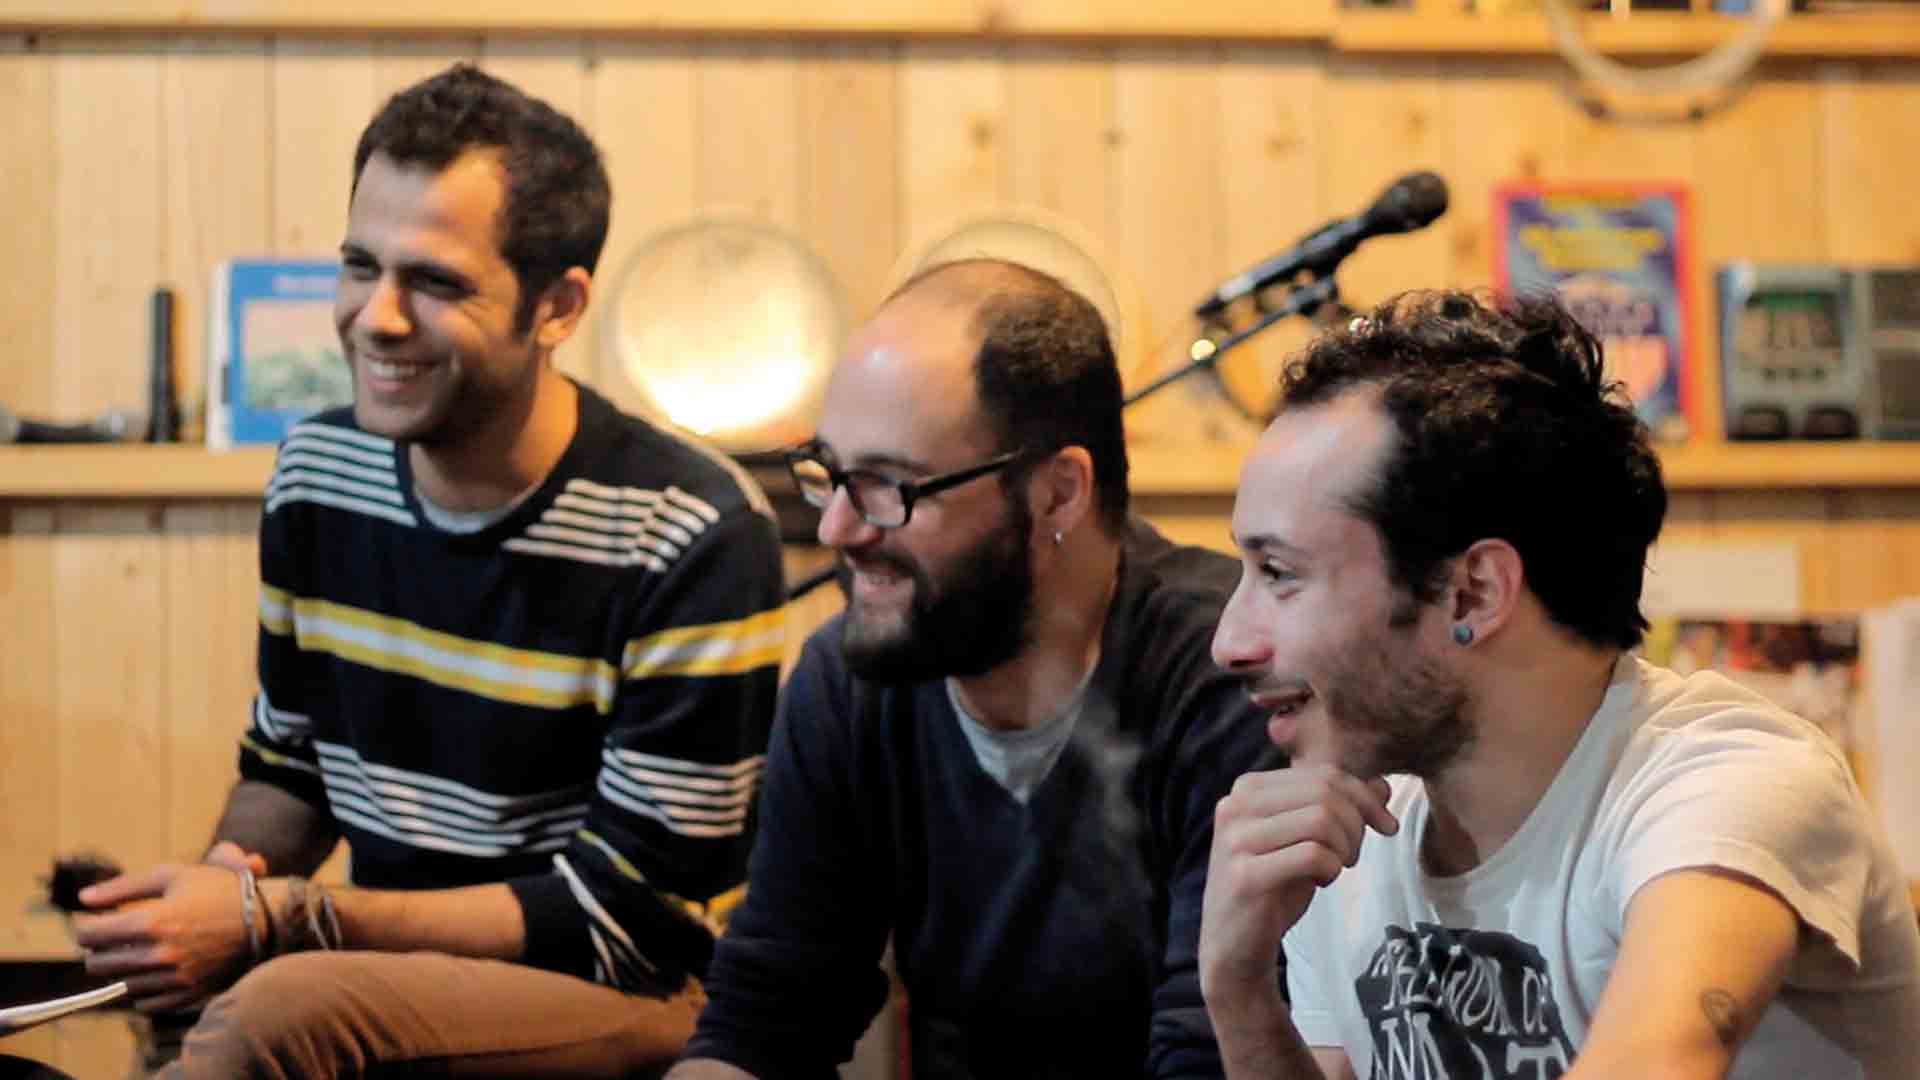 Left to Right: Dani Shukri, Khaled Omran, Tarek Khuluki // TANJARET DAGHET // photo credit: Moussa Shabandar